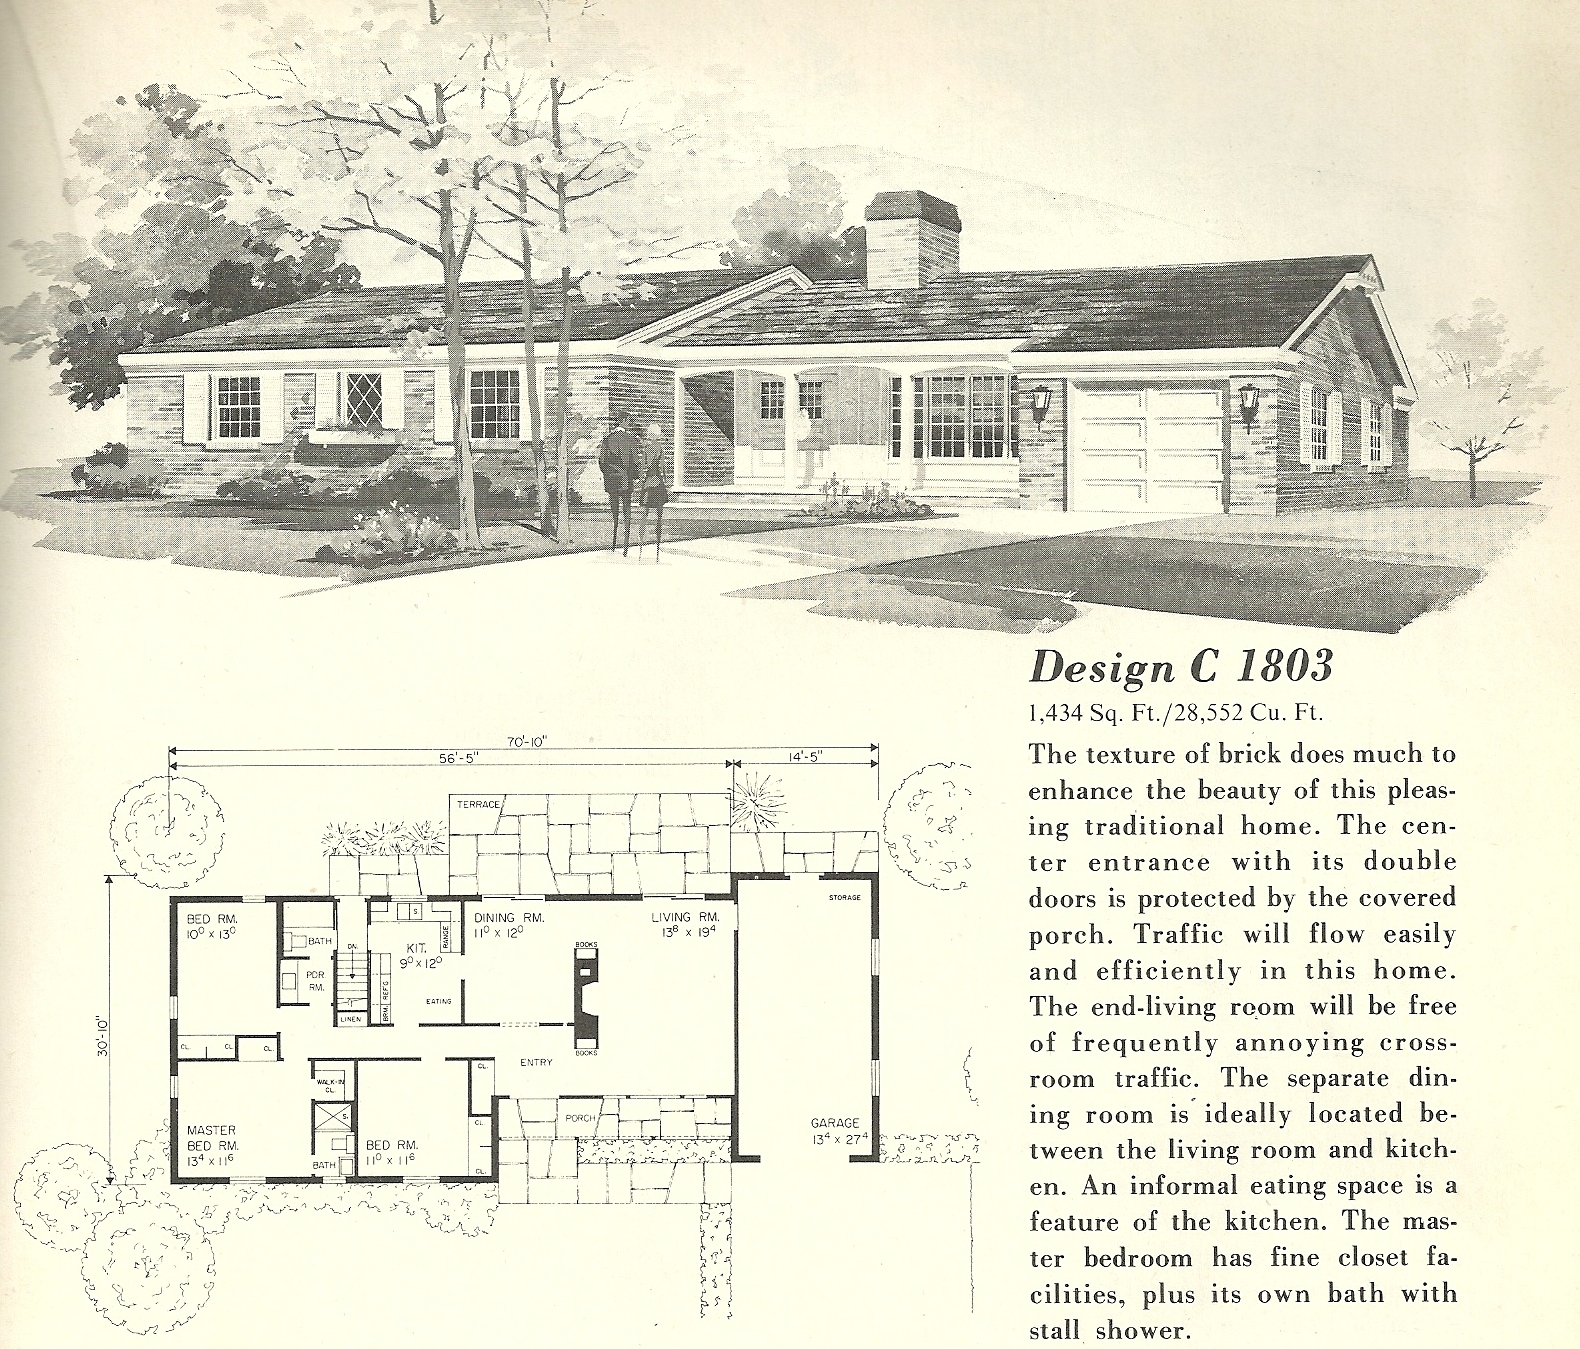 Vintage house plans 1803 antique alter ego - Retro home design ...